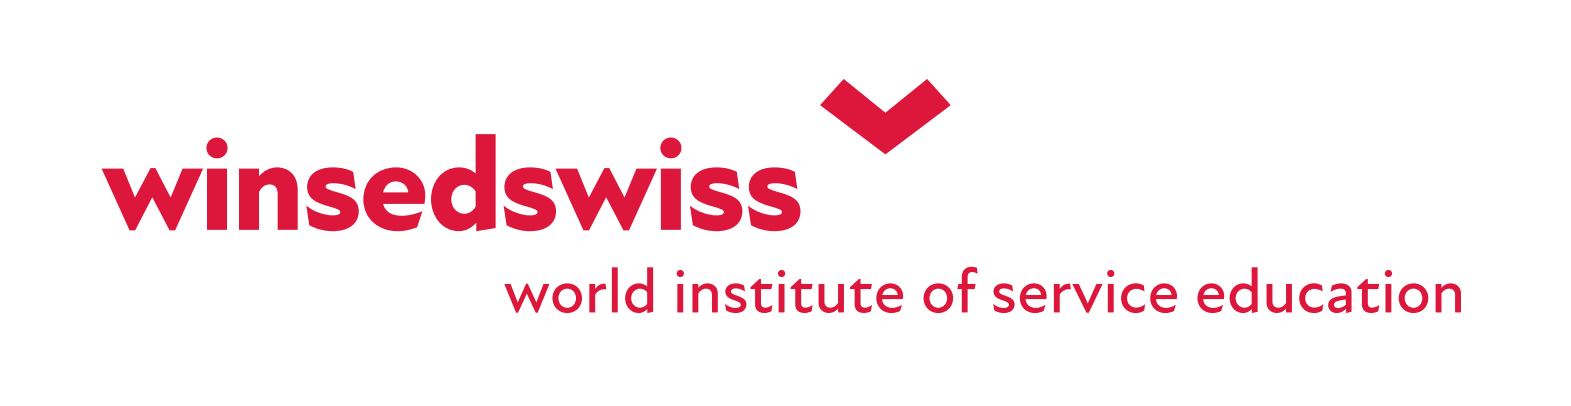 winsedswiss - world institute of service education